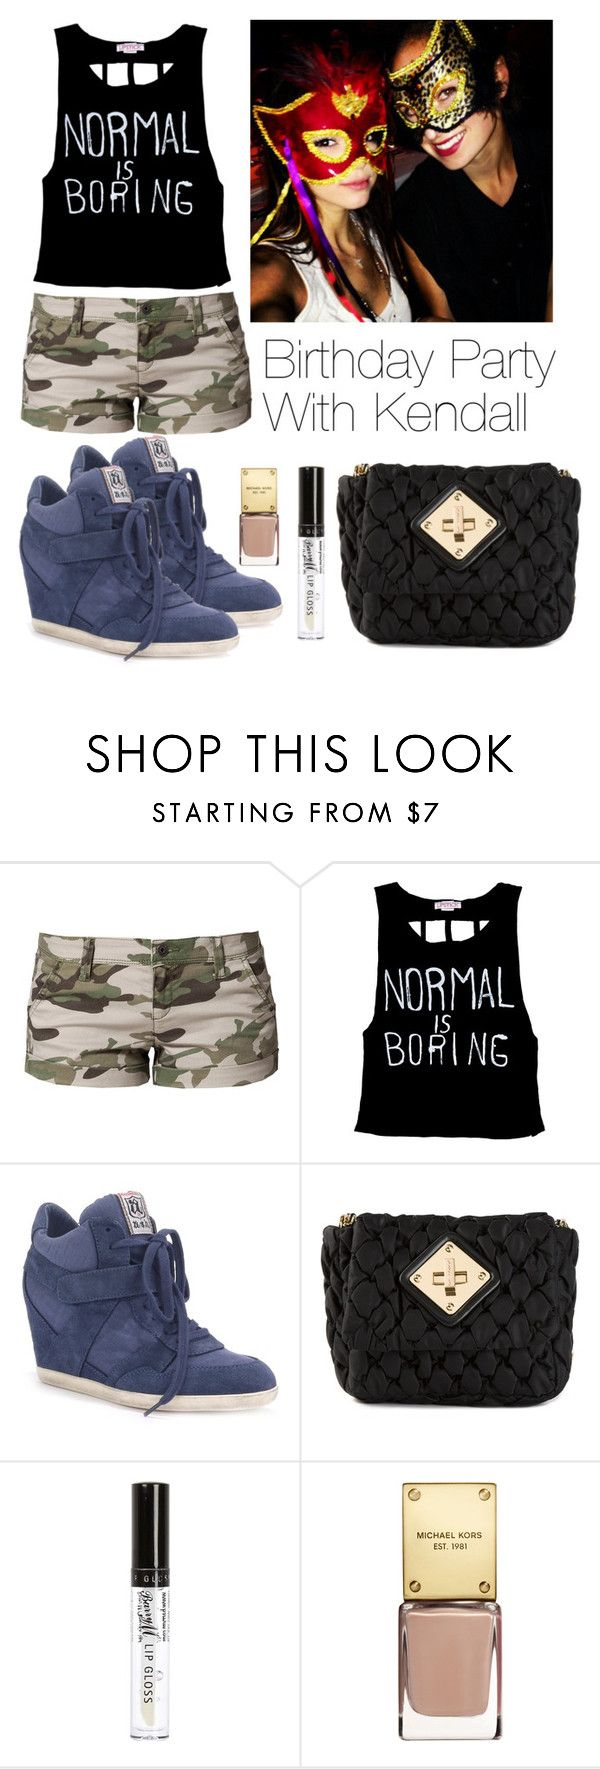 """""""Birthday Party With Kendall"""" by anne66francis ❤ liked on Polyvore featuring Benetton, Bibi, Moschino, River Island, kendalljenner and masquarade"""